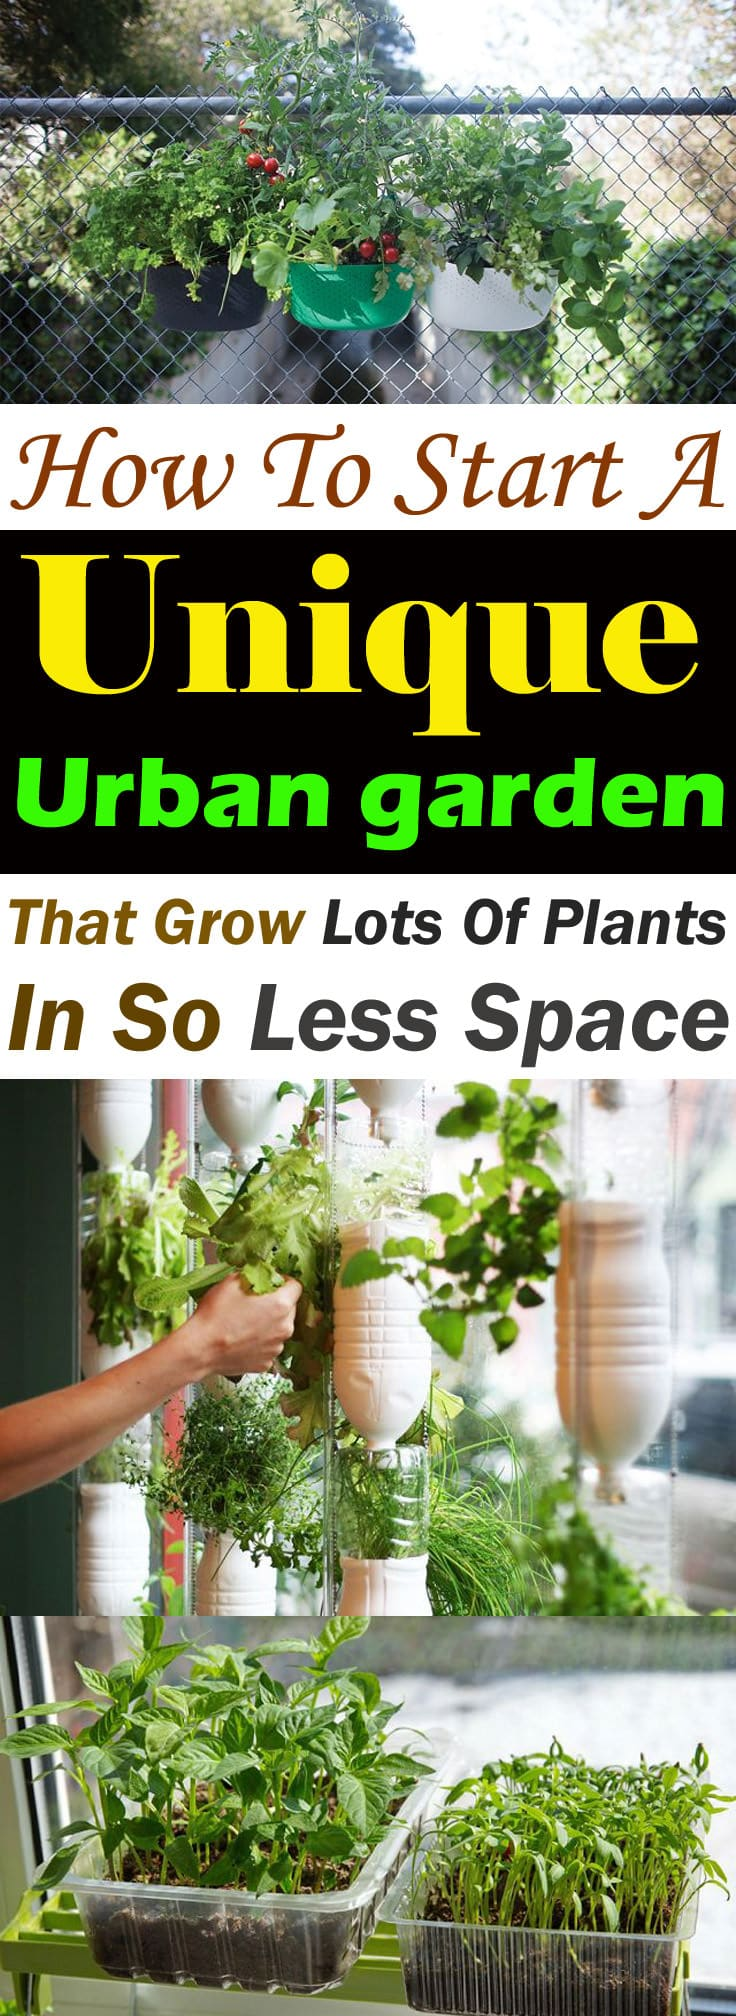 To start an urban garden, you need the right tools, ideas, and some inspiration. This post is all about that!